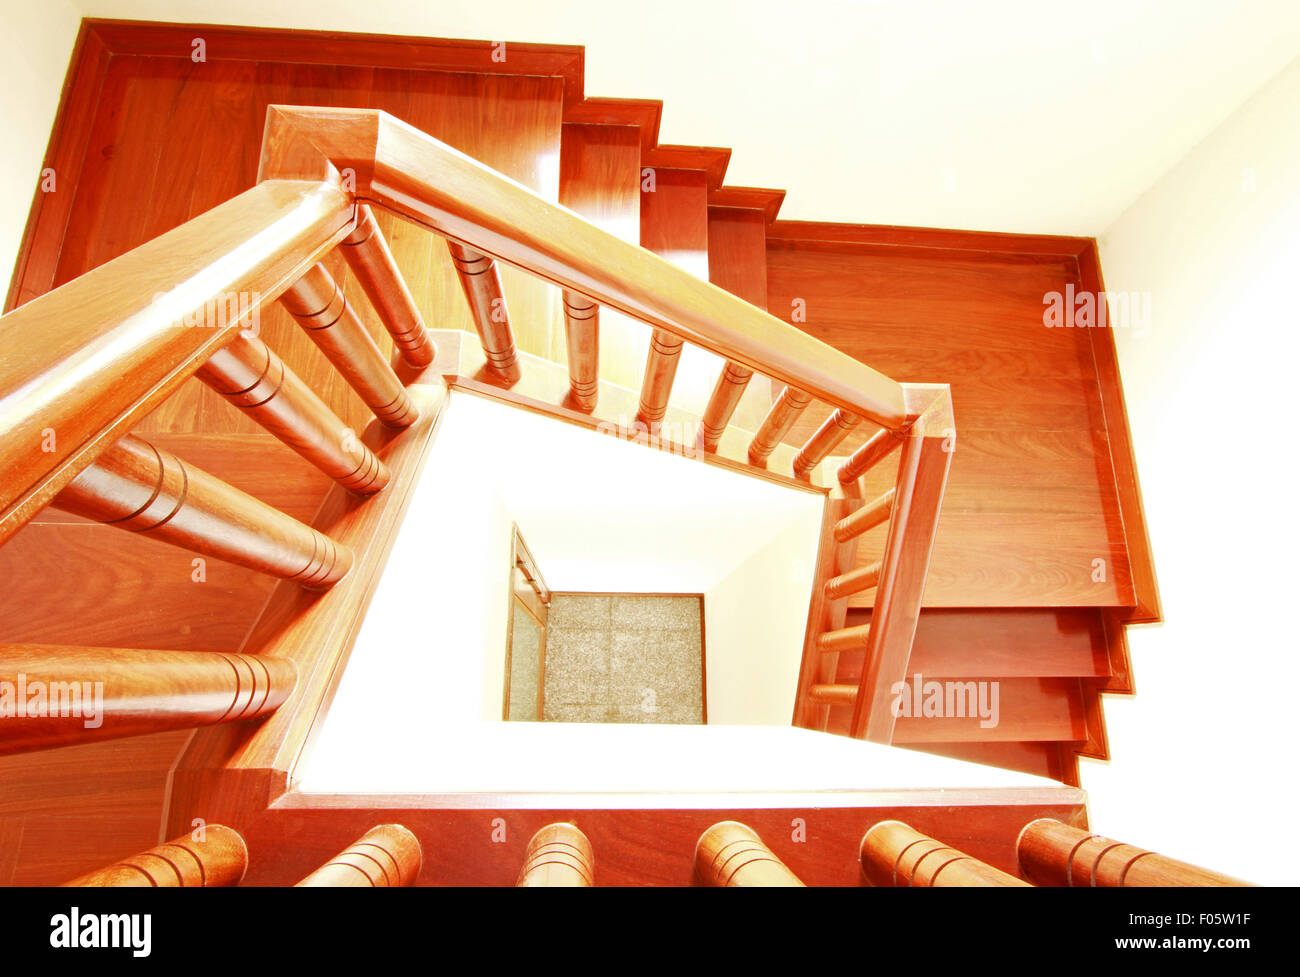 Wooden stairs and handrail - Stock Image